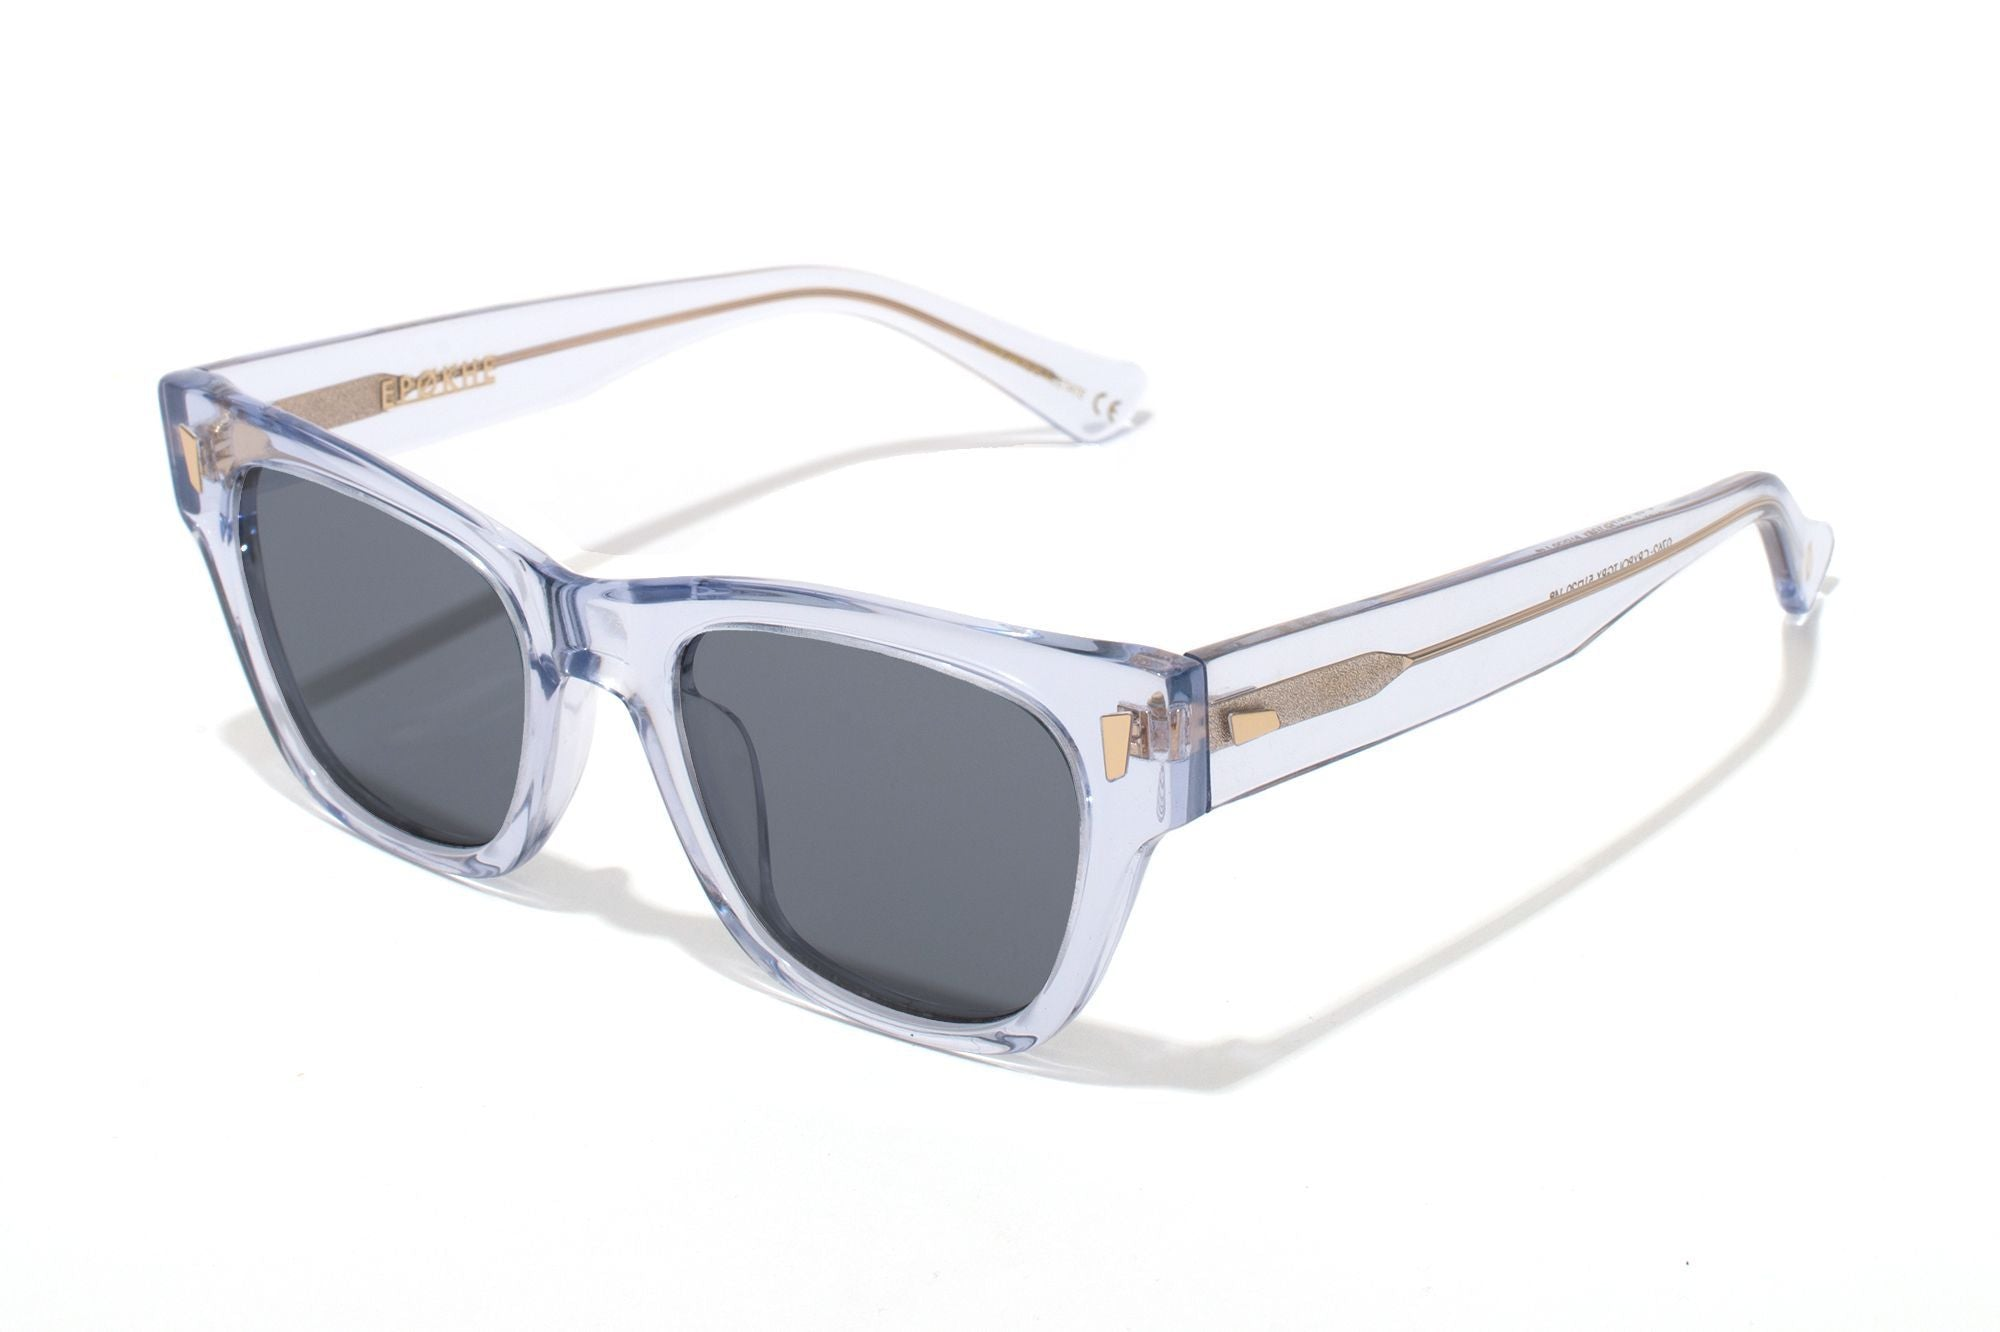 Epokhe NON - CRYSTAL POLISHED/BLACK - Board Store EpokheSunglasses